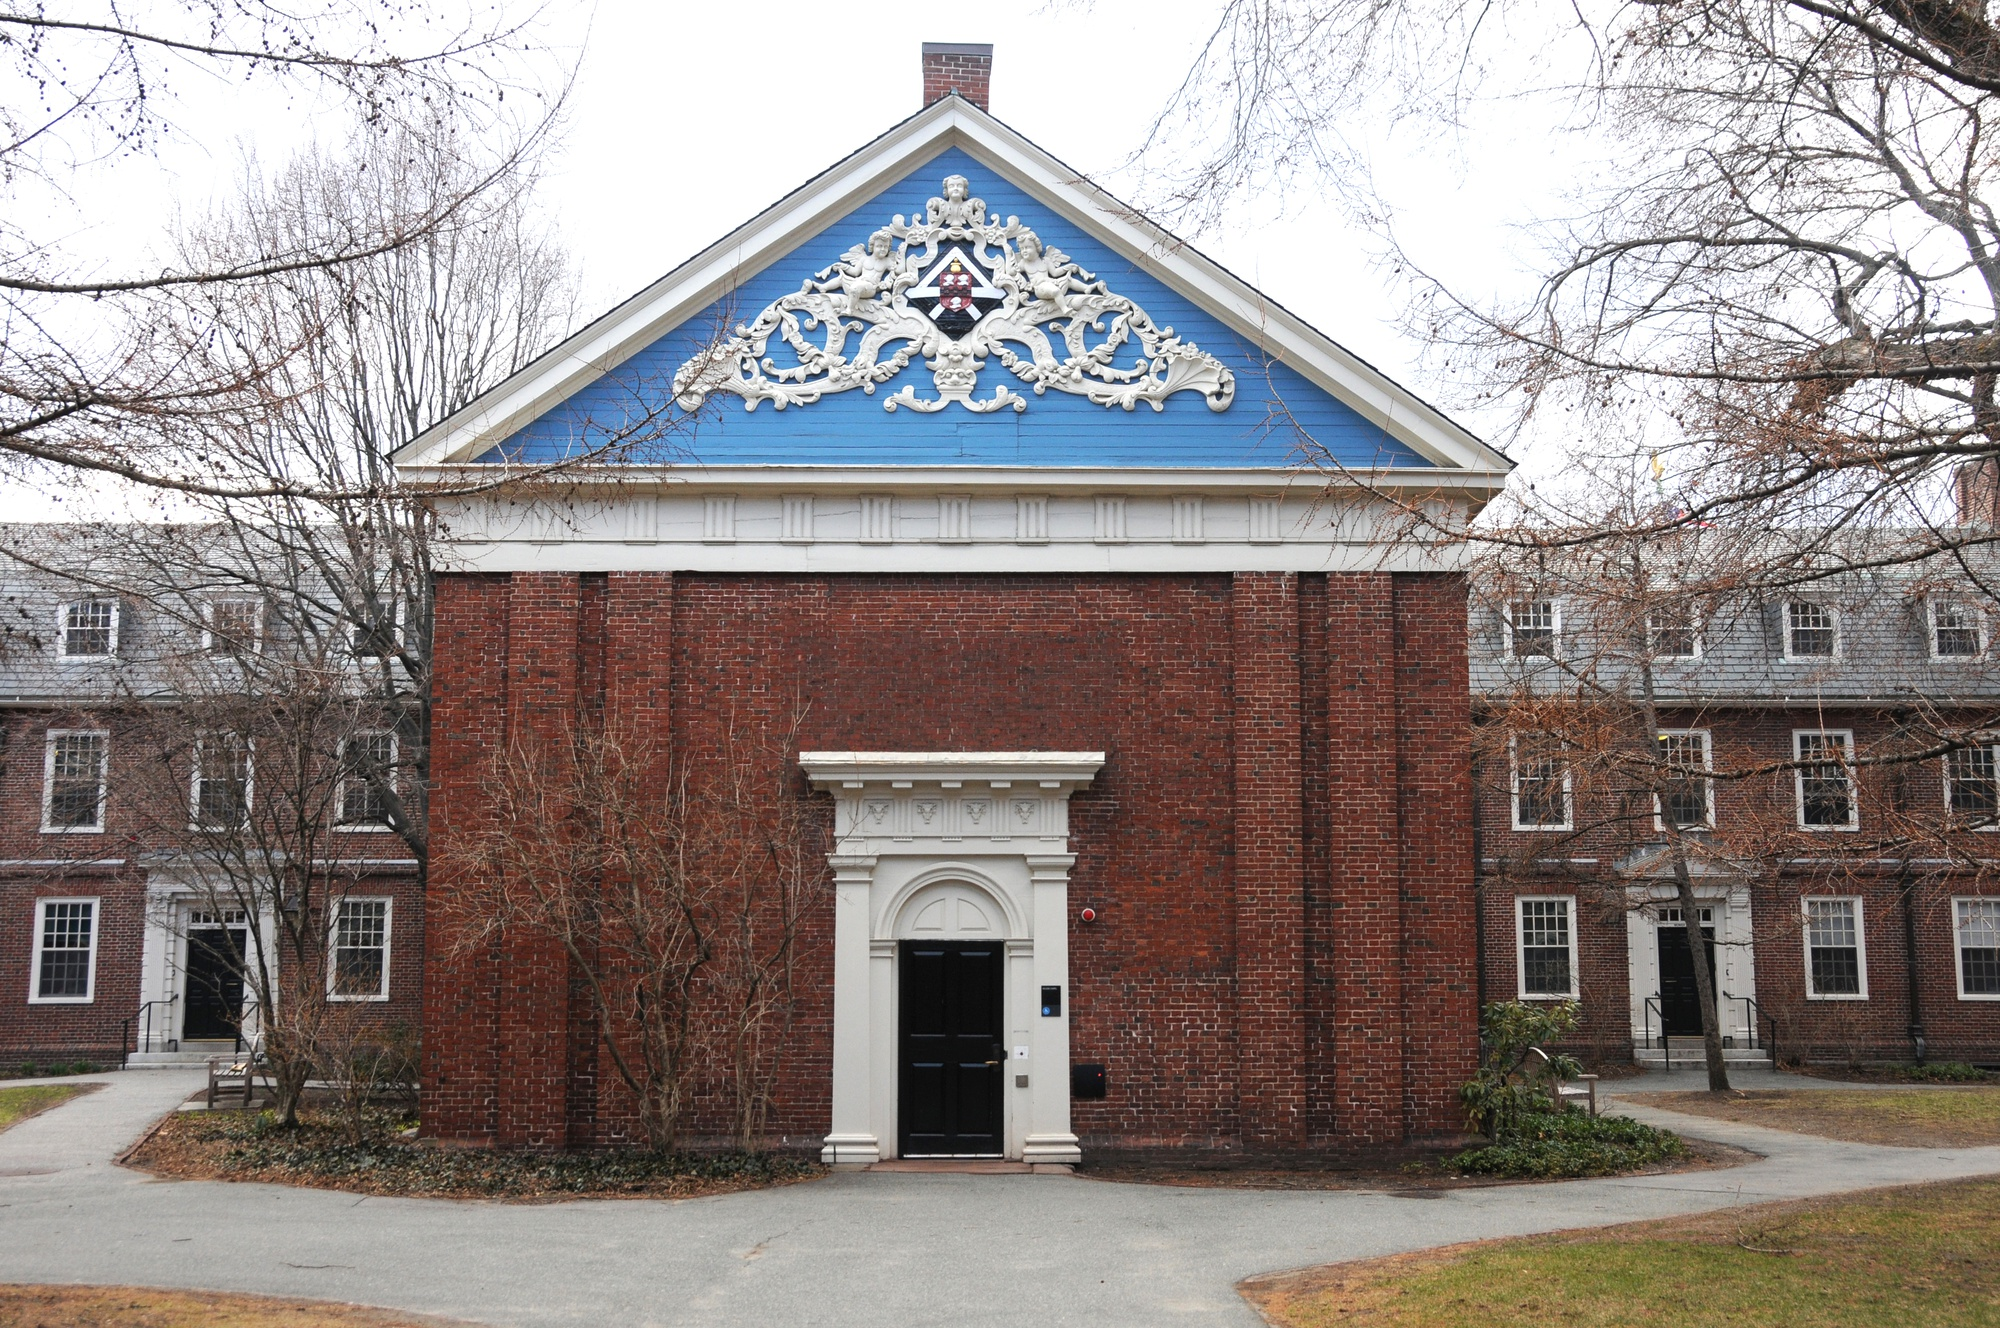 Completed in 1744, Holden Chapel is the third oldest building at Harvard and one of the oldest college building in the nation. Holden Chapel is located in Holden Quadrangle in Harvard Yard.